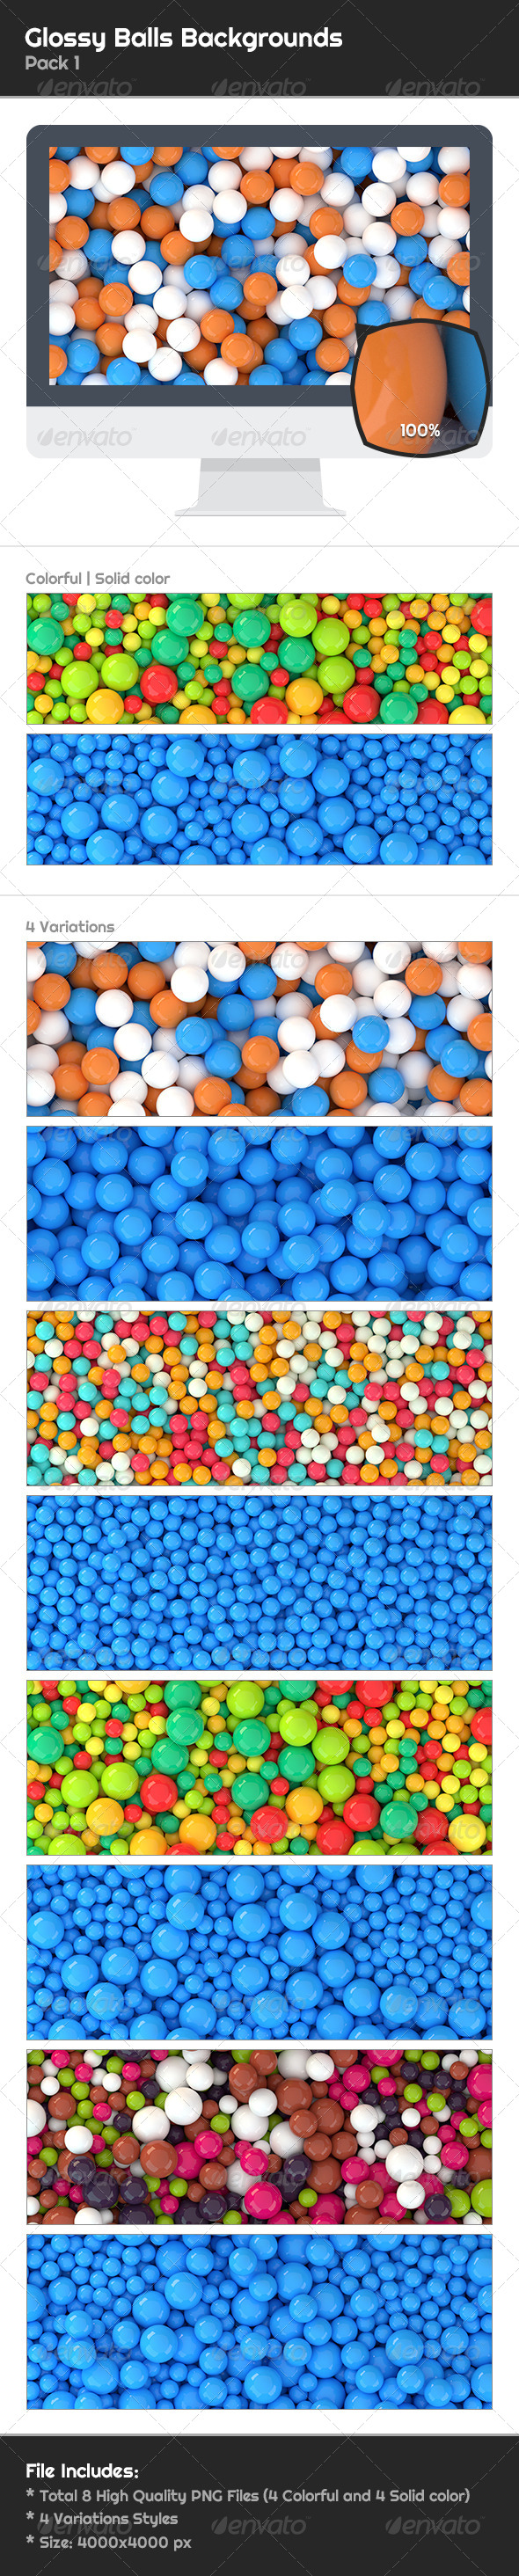 GraphicRiver 8 Glossy Balls Backgrounds Pack 1 6644459